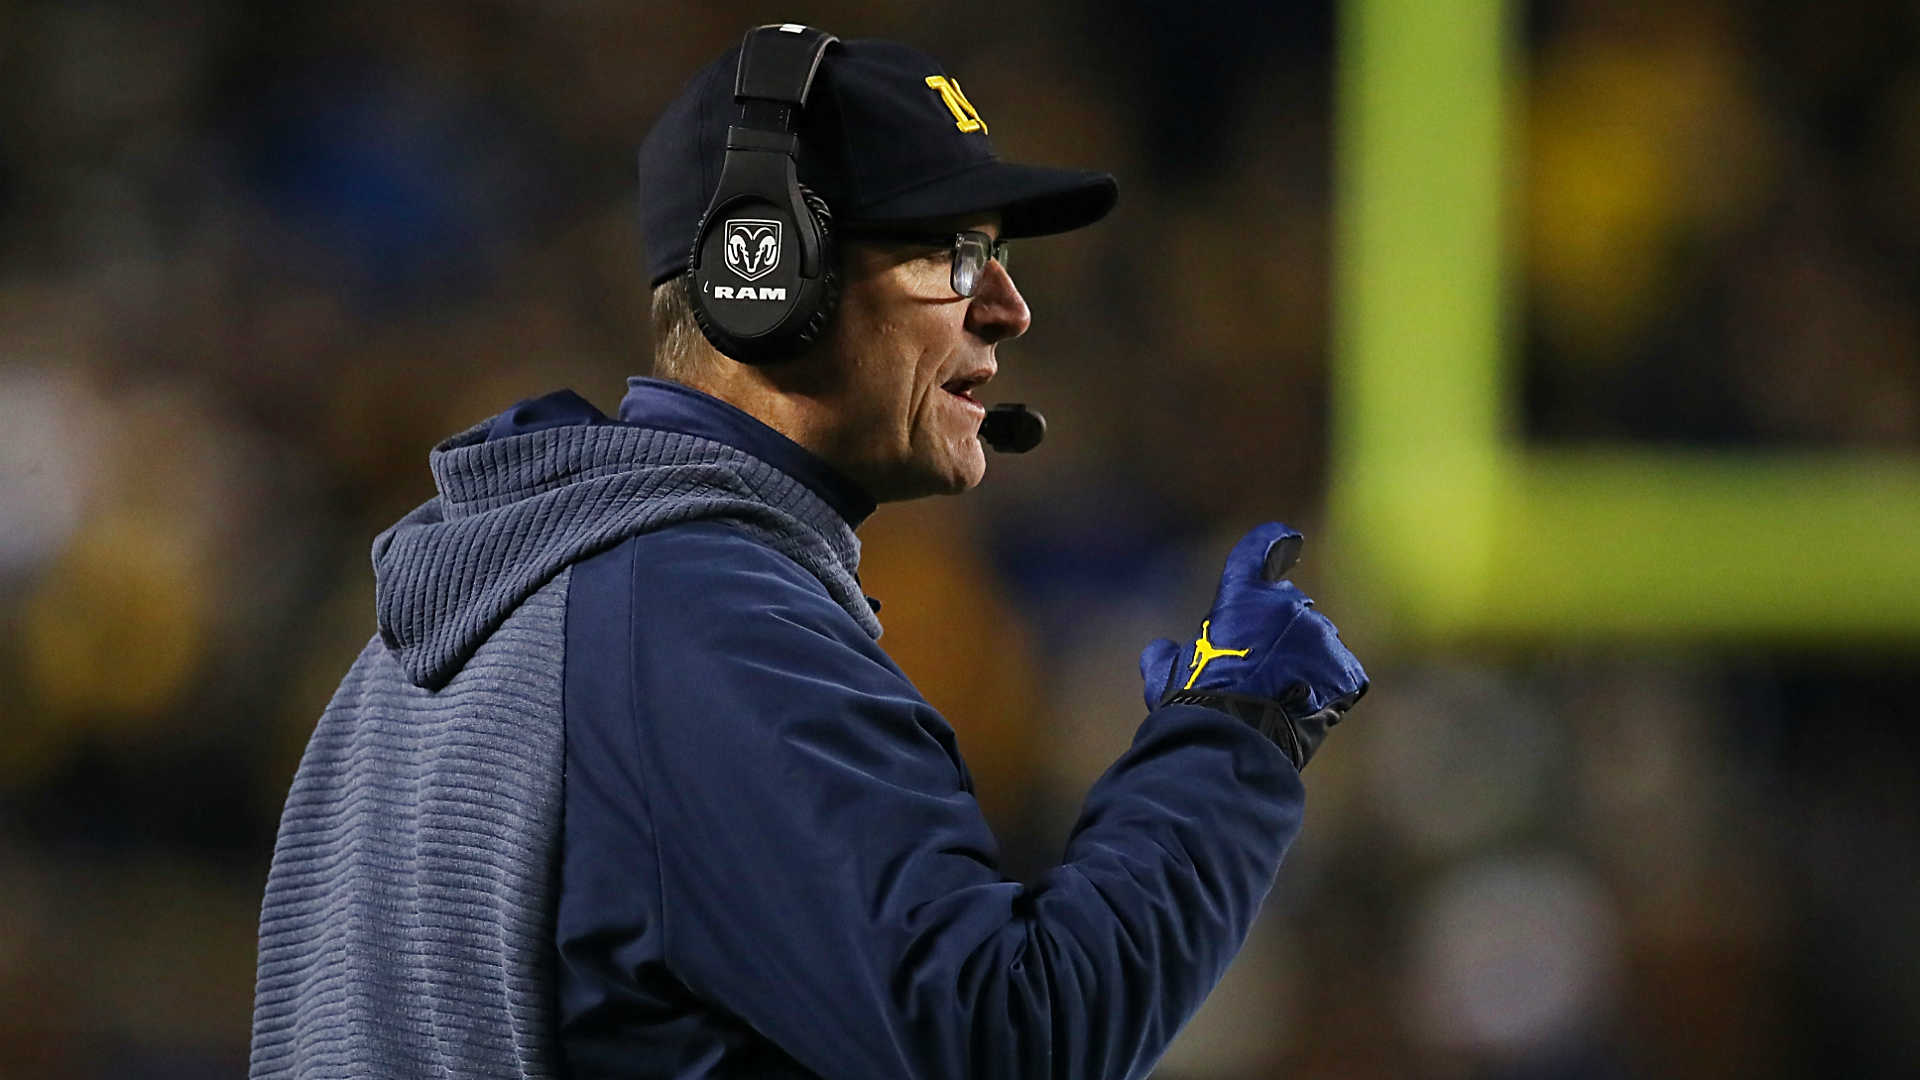 Jim Harbaugh's Urban Meyer comment elevates Michigan expectations even higher in 2019